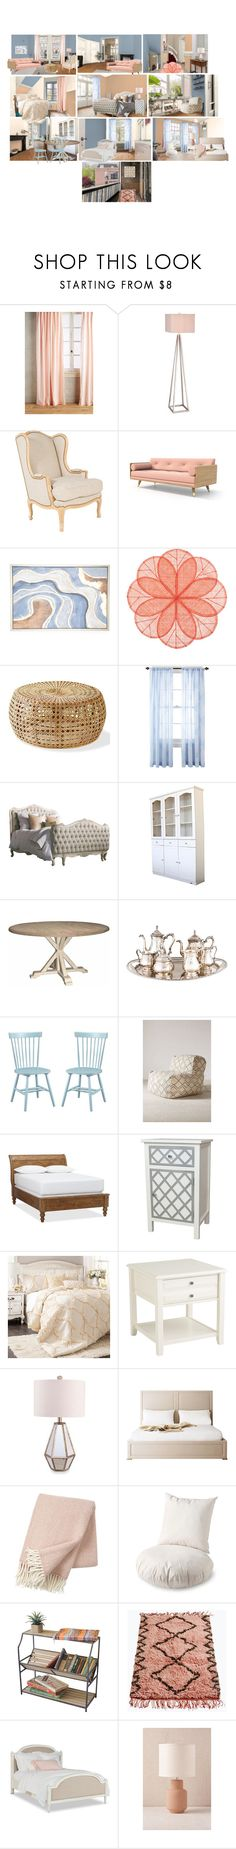 """Aleutian, Sociable, Fragile Beauty, Downy"" by flapper-shoes ❤ liked on Polyvore featuring interior, interiors, interior design, home, home decor, interior decorating, Anthropologie, Catalina, Deborah Rhodes and JCPenney Home"